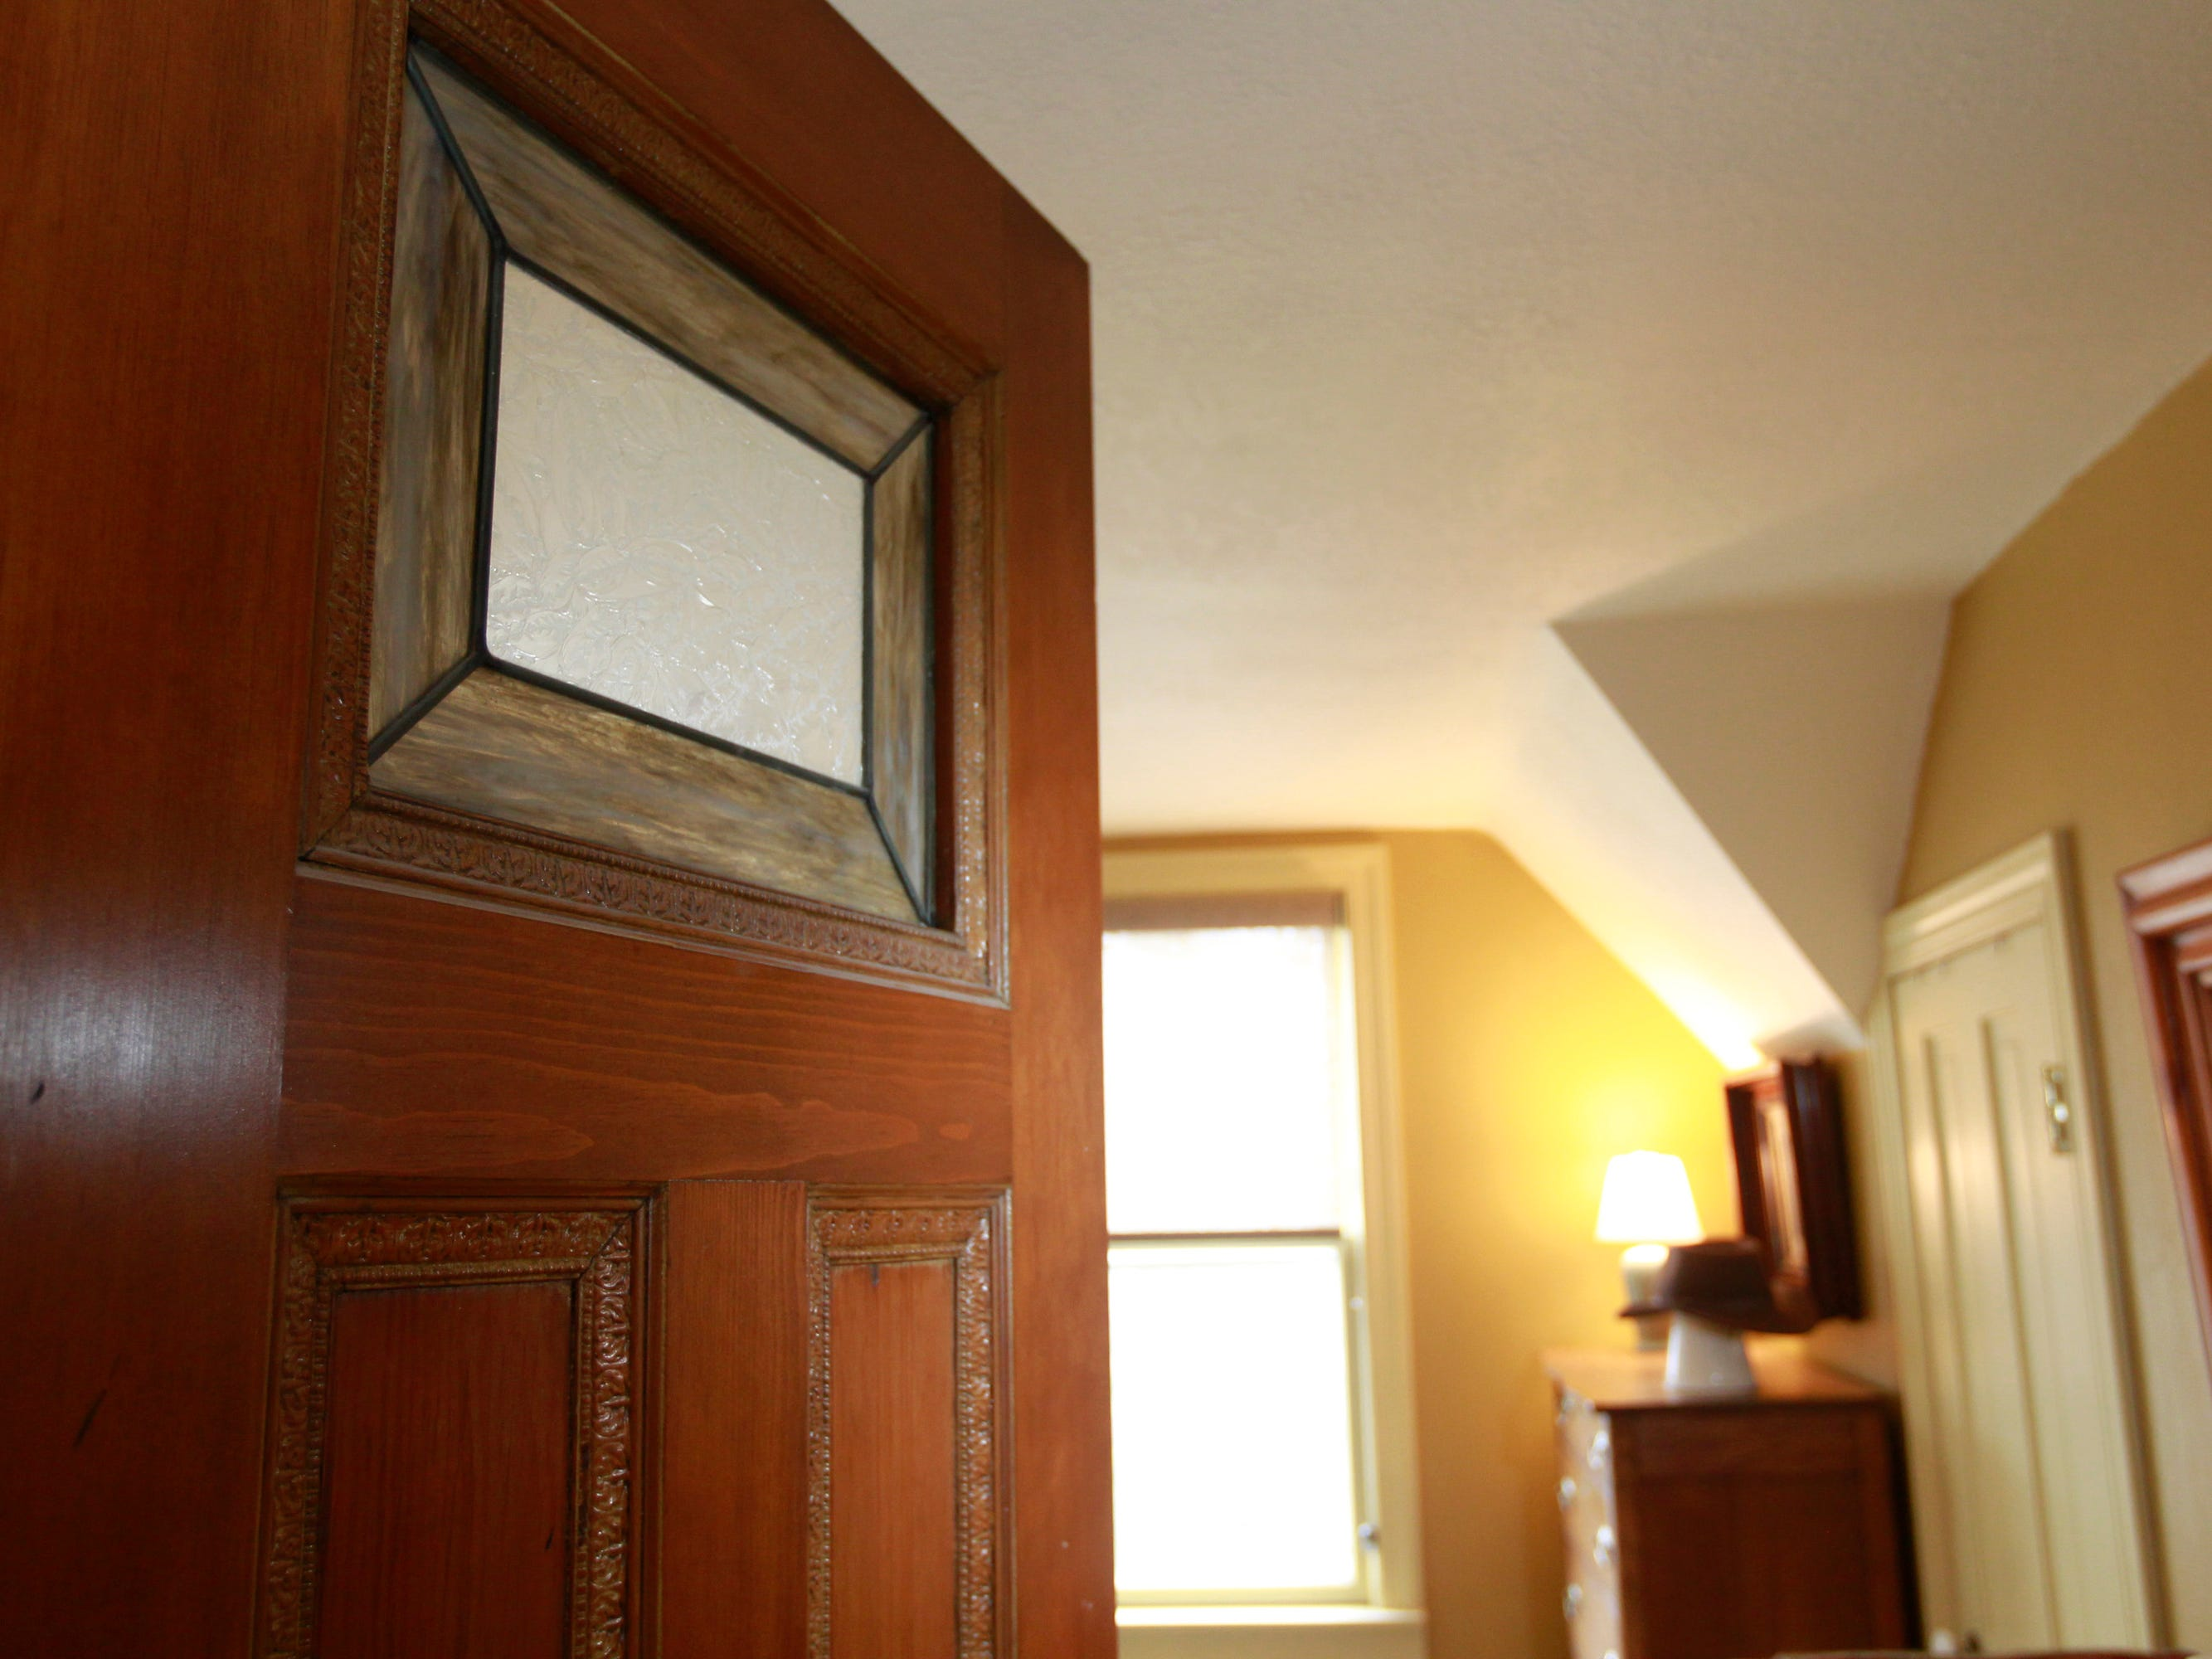 The bedroom door of the master bedroom has a stained glass feature.